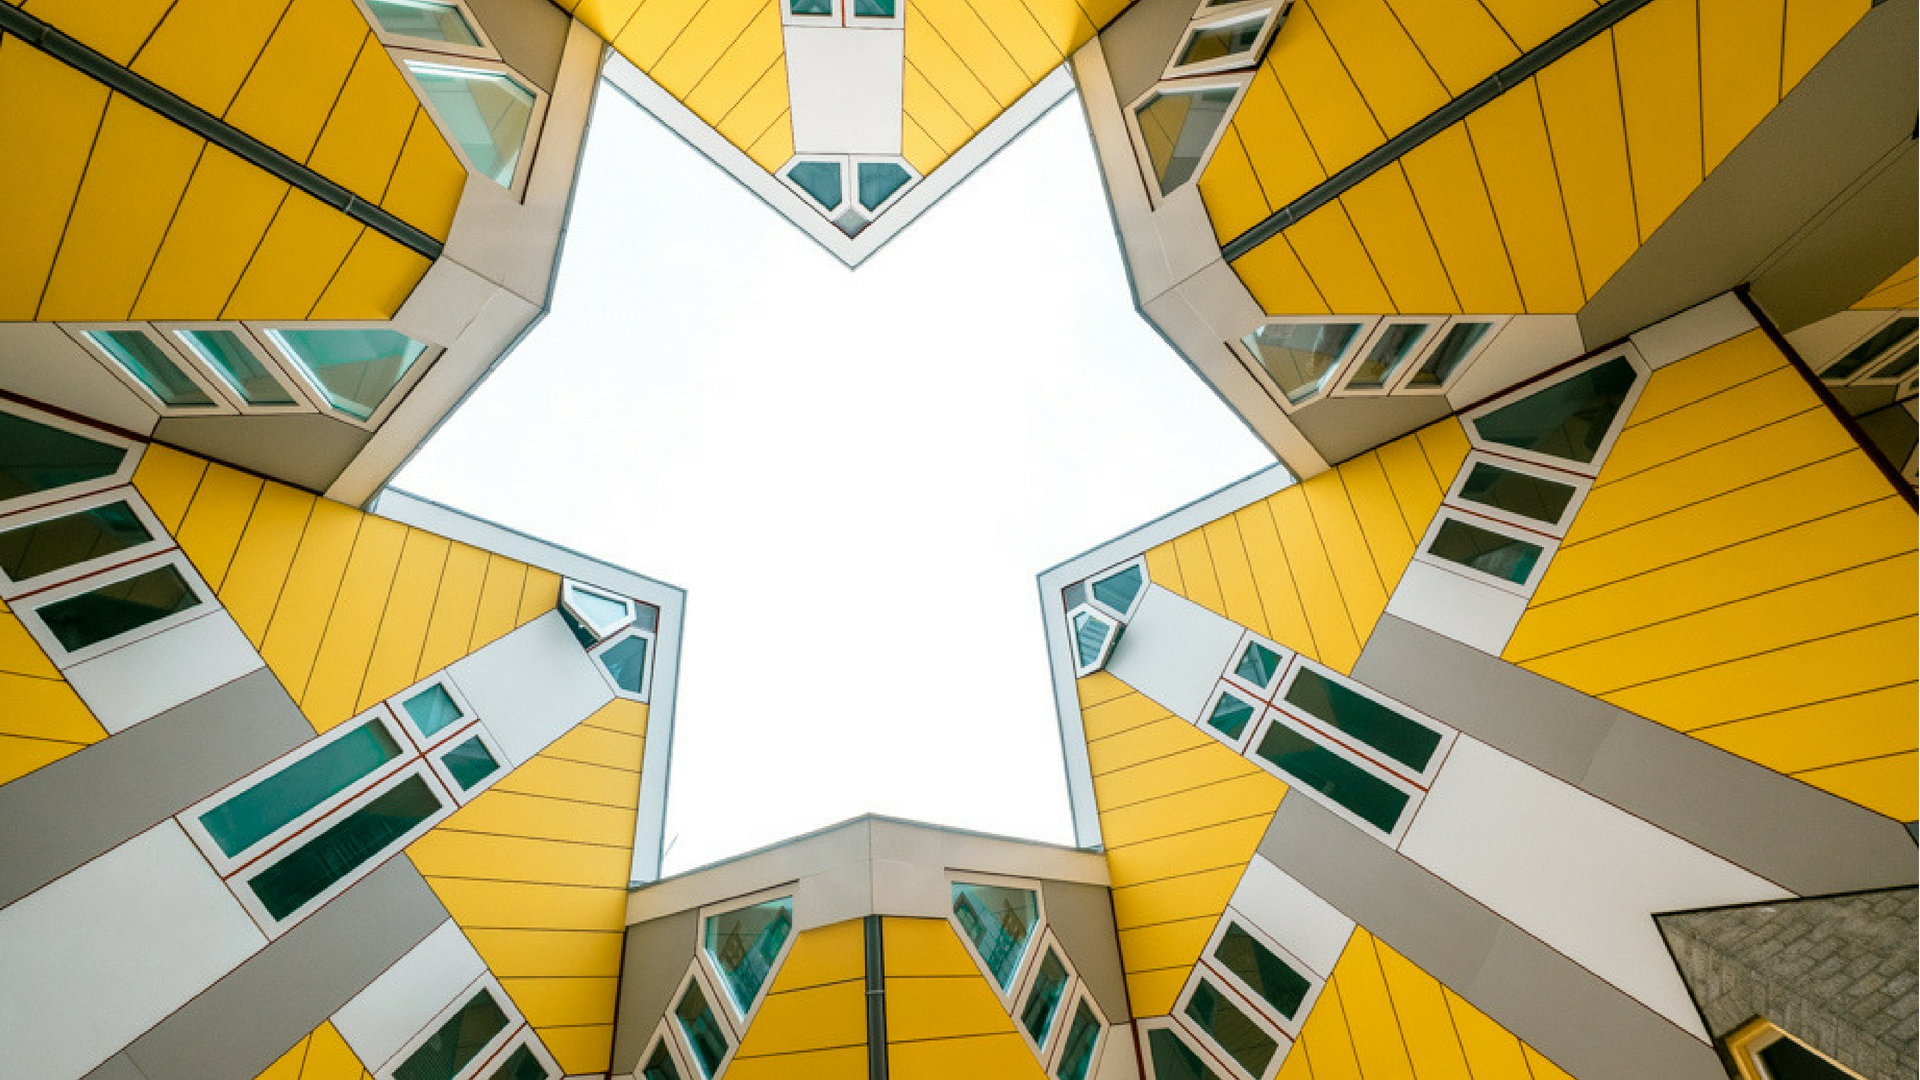 Things-to-Do-in-Rotterdam-Netherlands-for-A-weekend-3.jpg